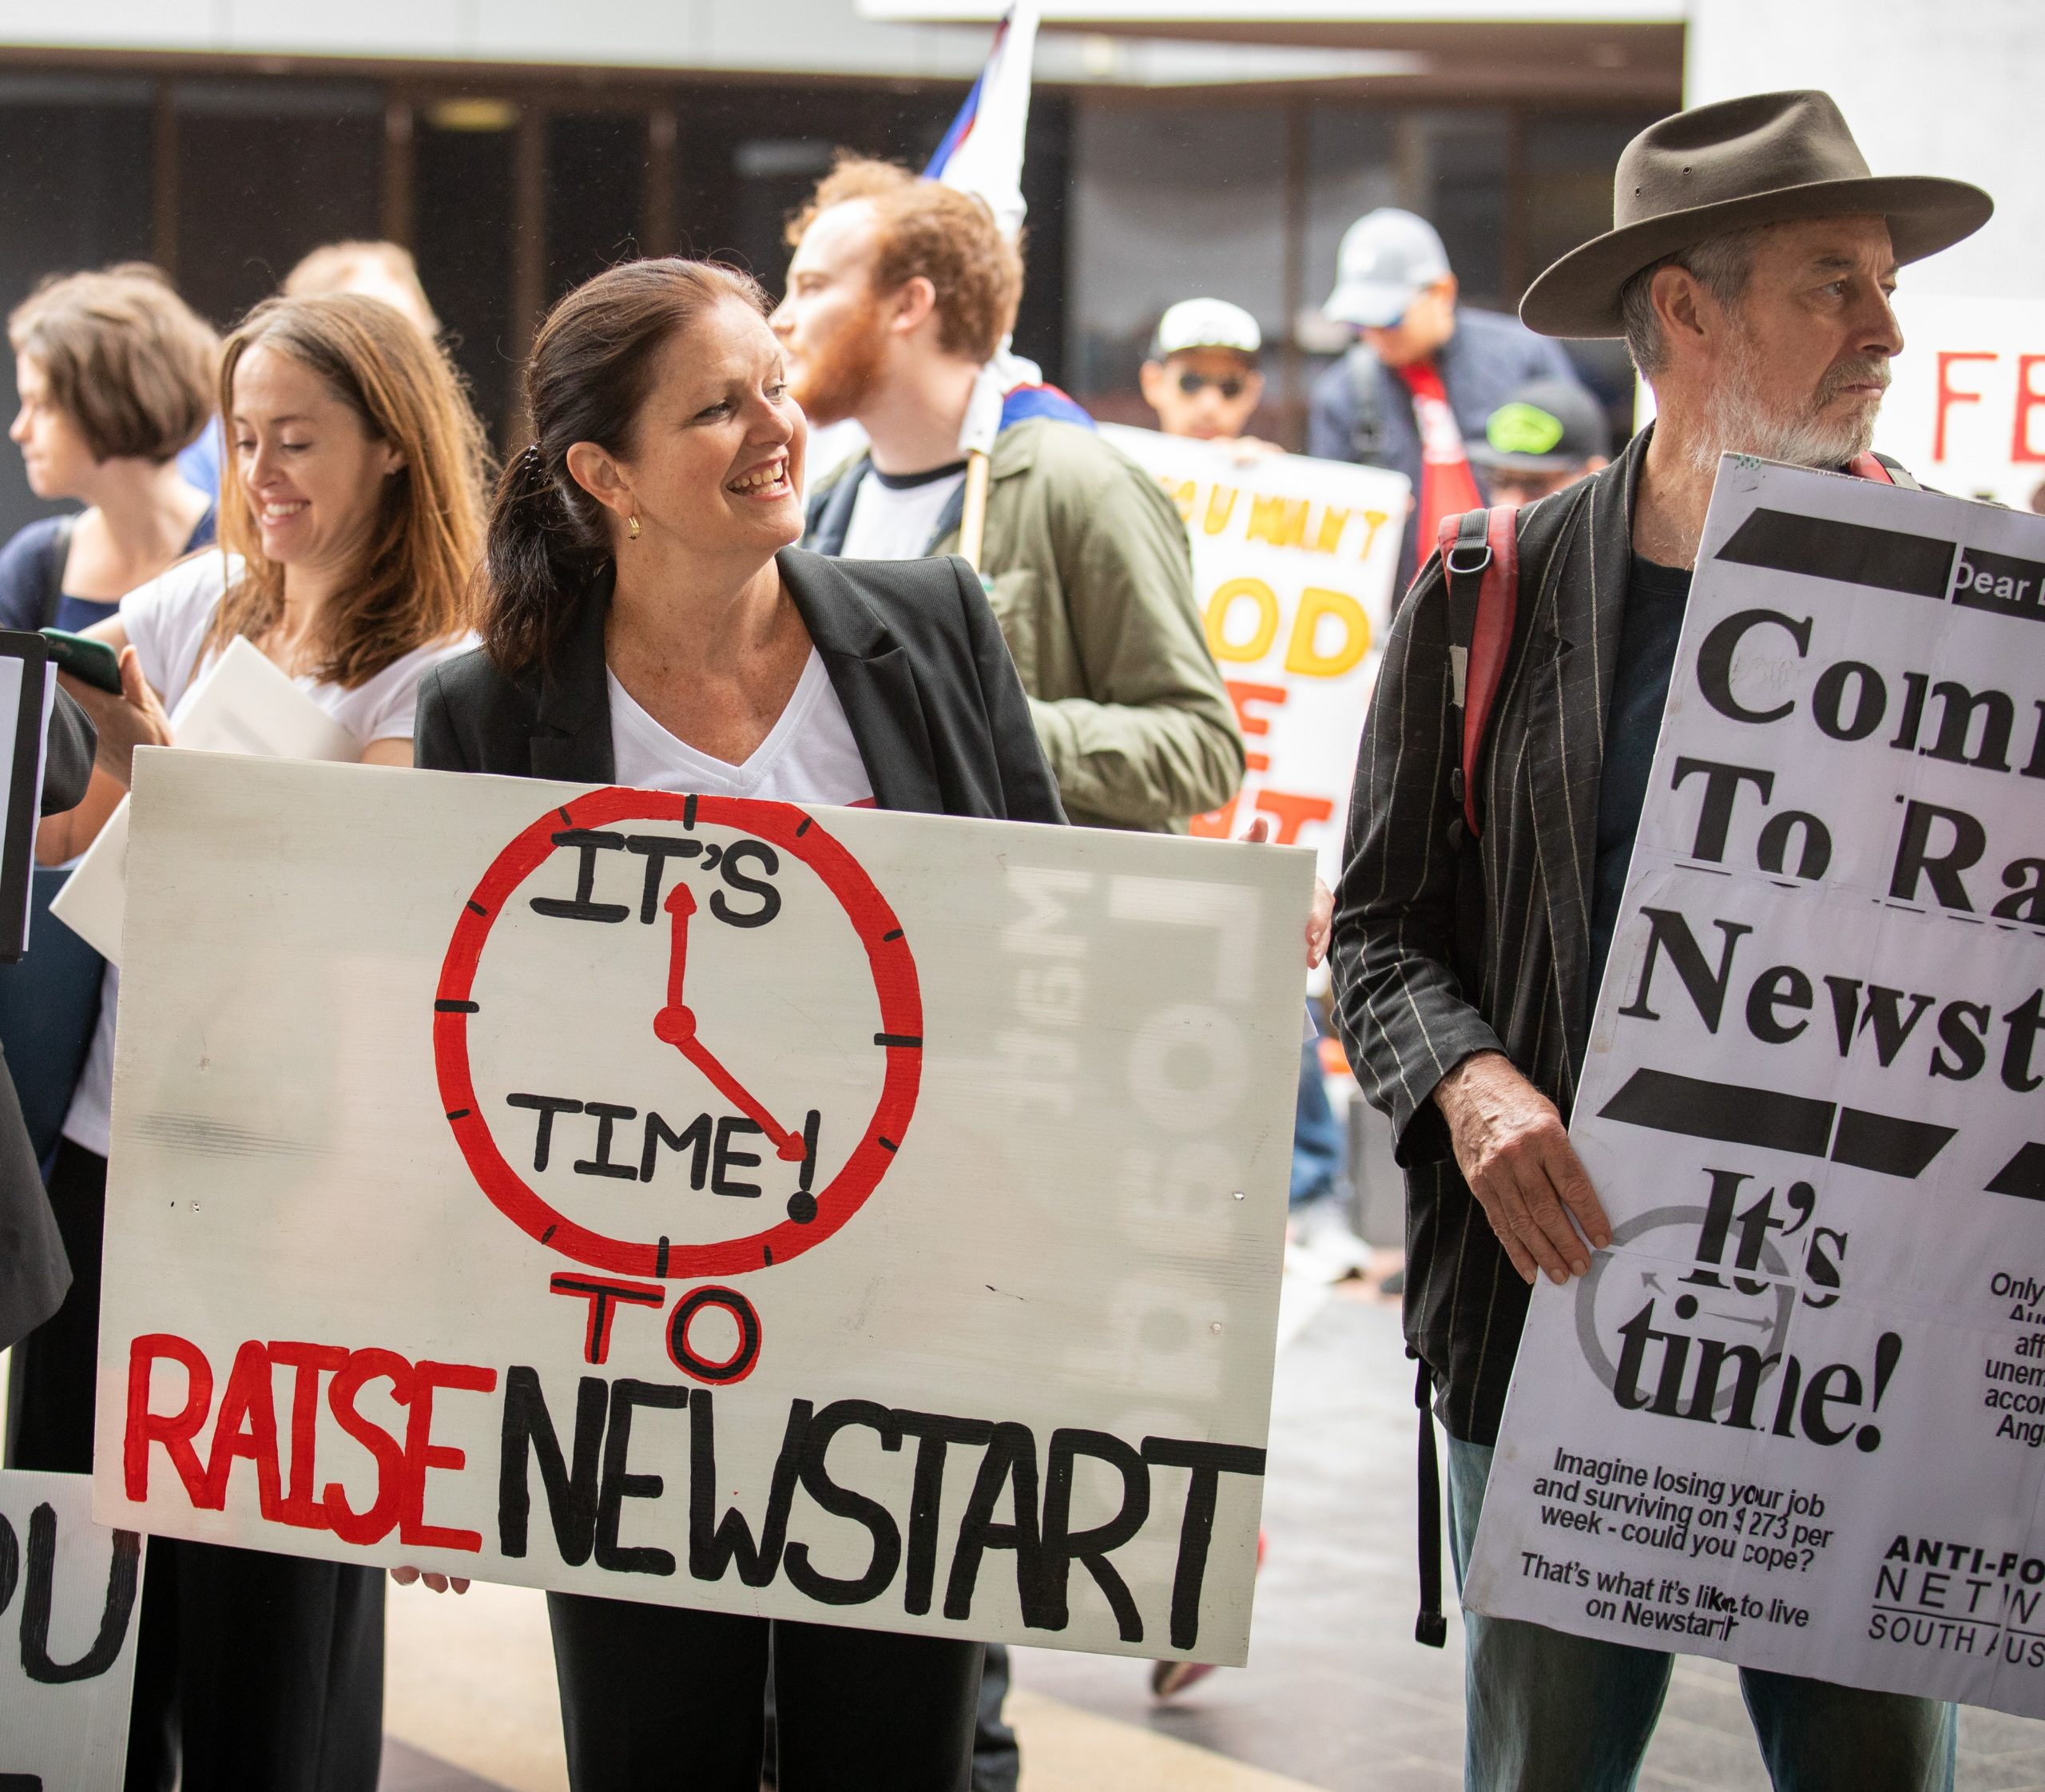 Photo: Cassandra Goldie, CEO of the Australian Council of Social Service (ACOSS), at a rally outside the ALP Conference, urging political leaders to commit to an increase to the Newstart Allowance. ACOSS provided bursaries for Newstart recipients to attend events at the ALP Conference.